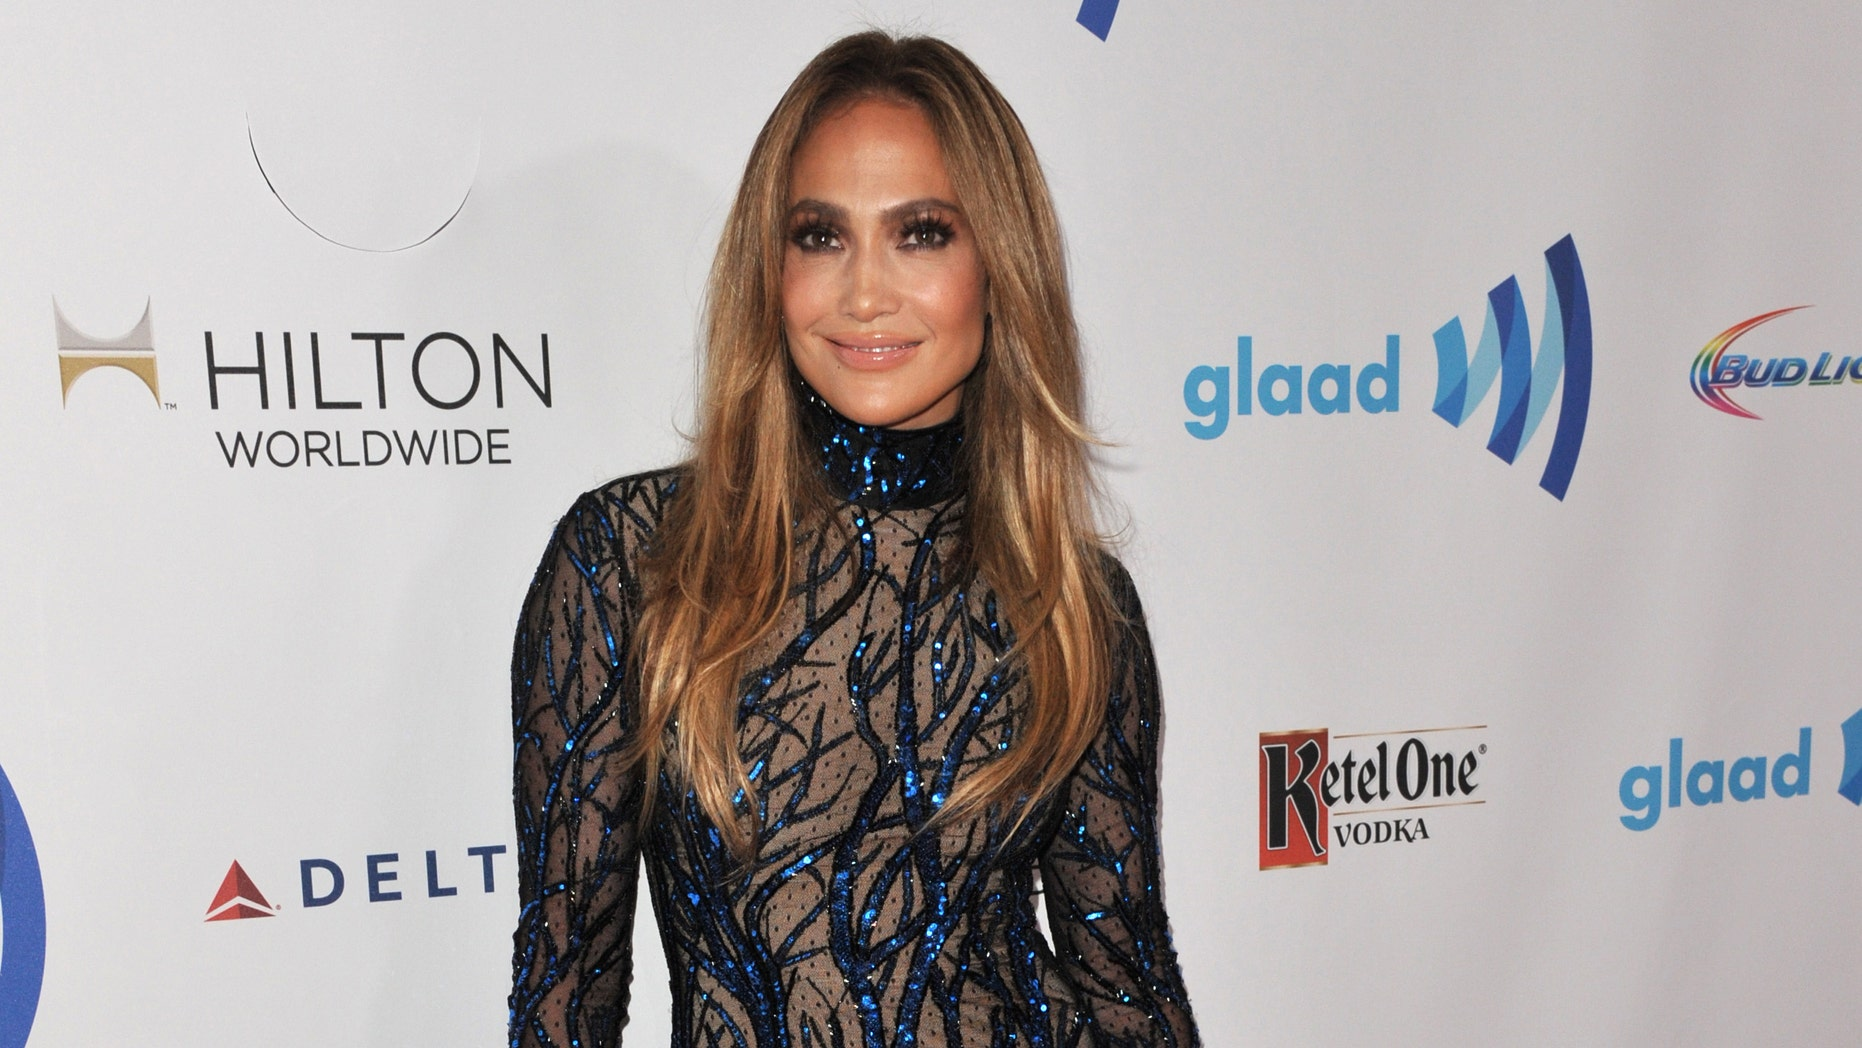 Jennifer Lopez arrives at the 25th Annual GLAAD Media Awards on Saturday, April 12, 2014. (Richard Shotwell/Invision/AP)